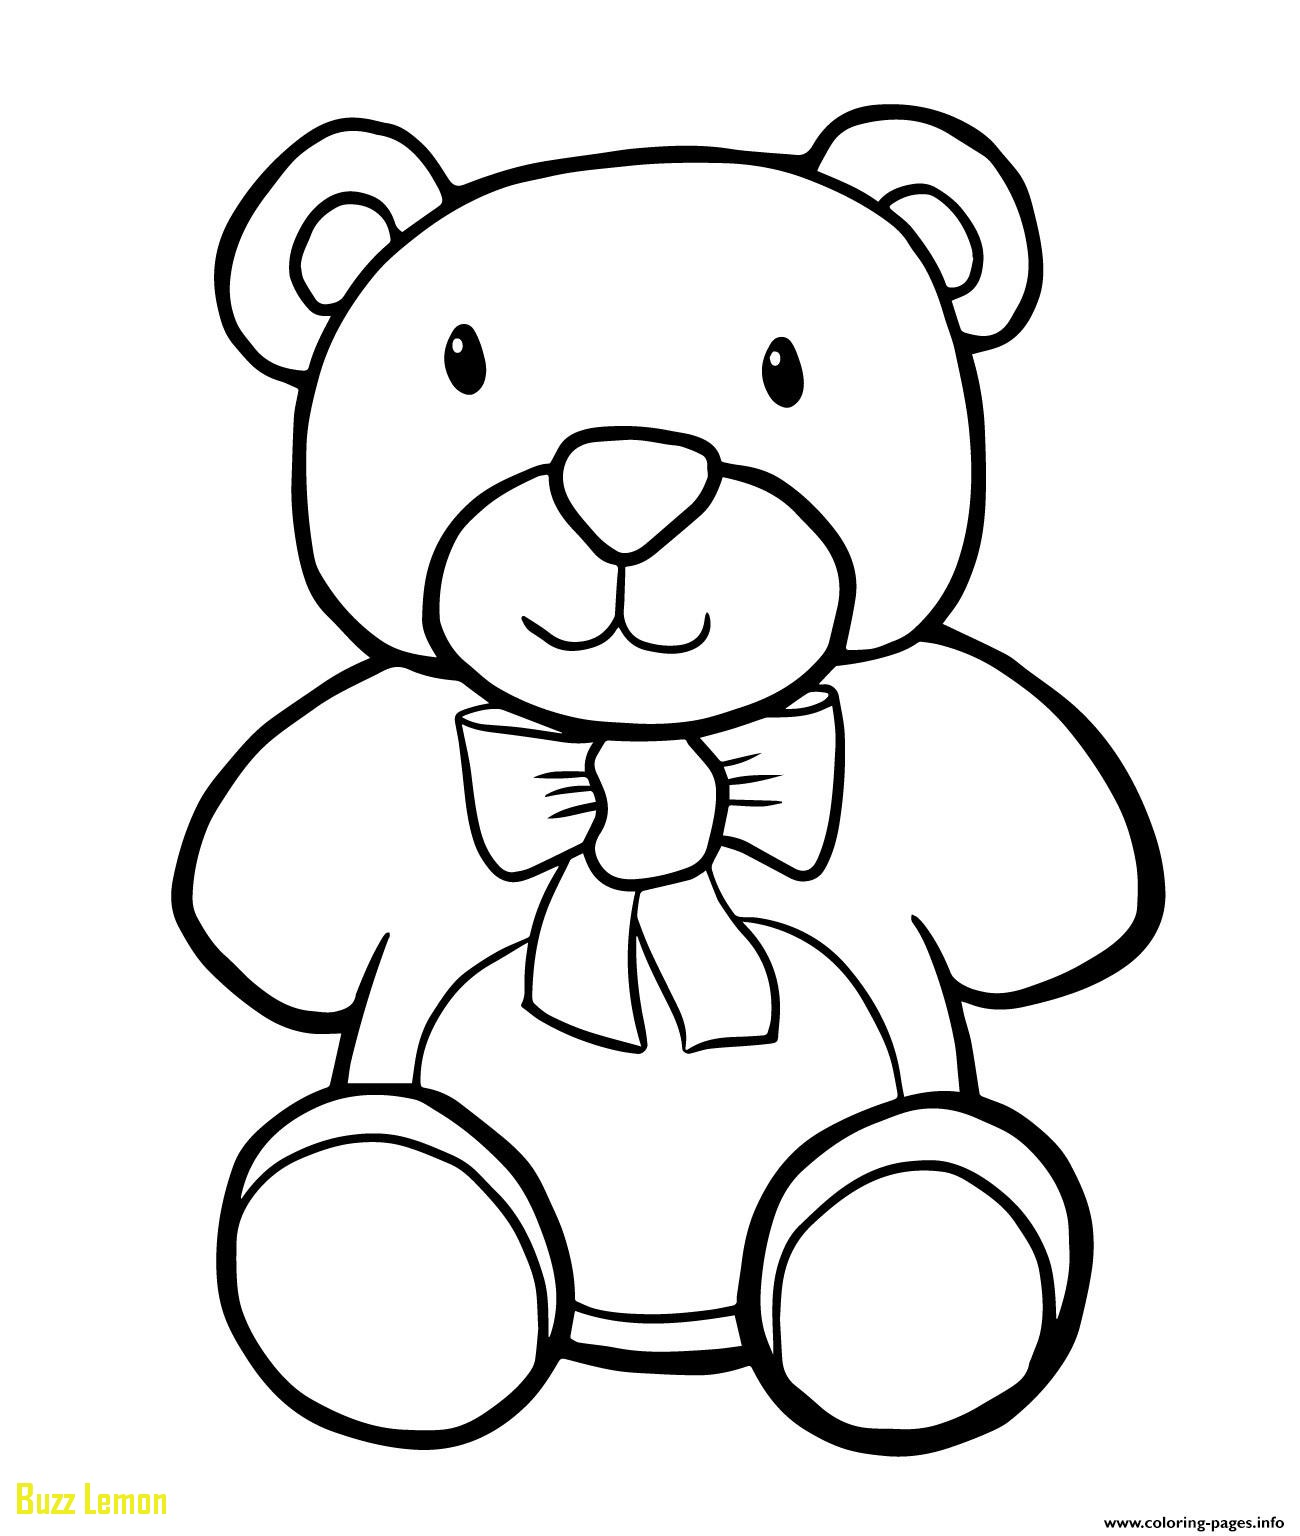 1300x1536 Coloring Page Teddy Bear Best Of Teddy Bear Simple Kids Coloring